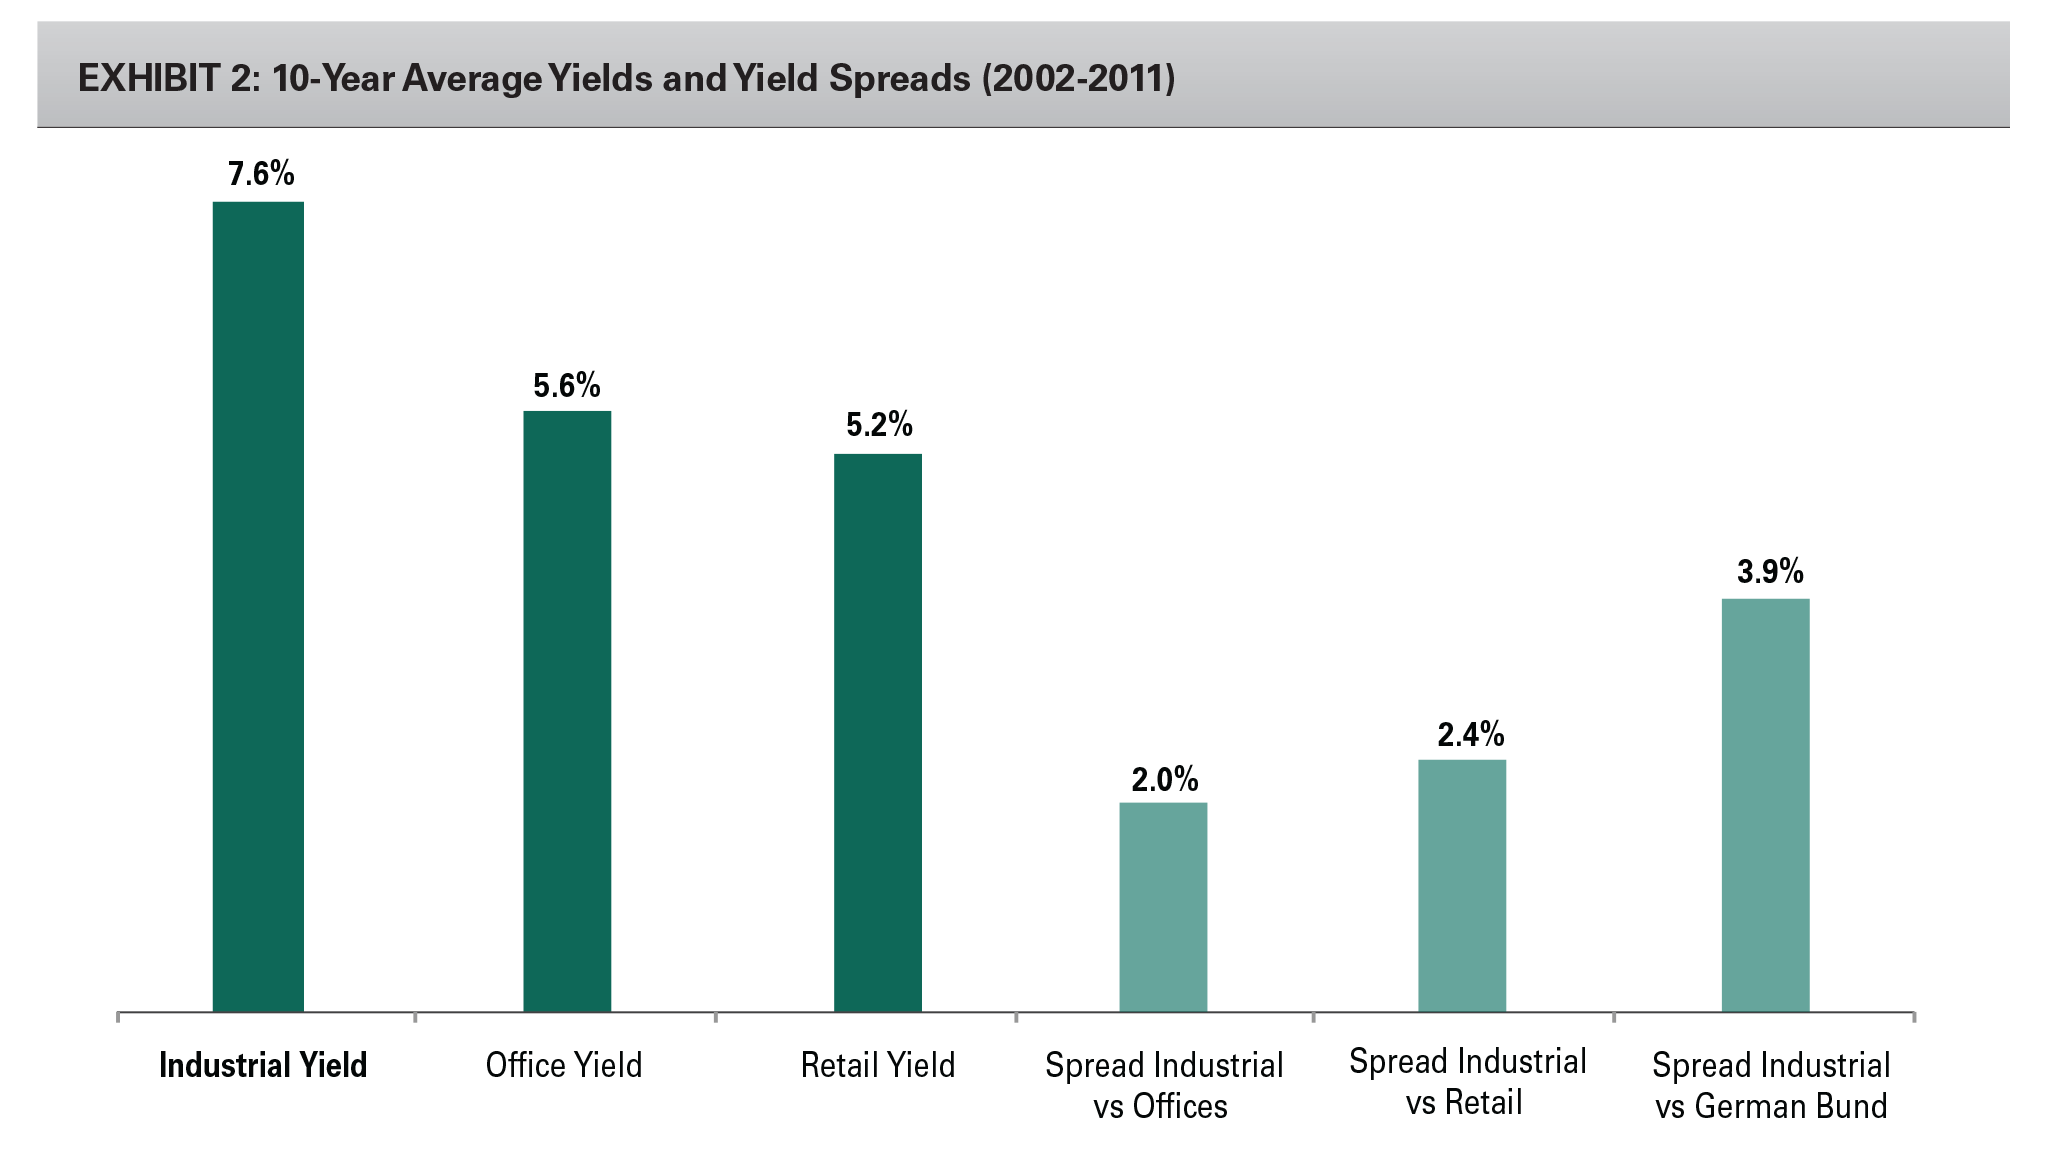 EXHIBIT 2: 10-Year Average Yields and Yield Spreads (2002-2011)